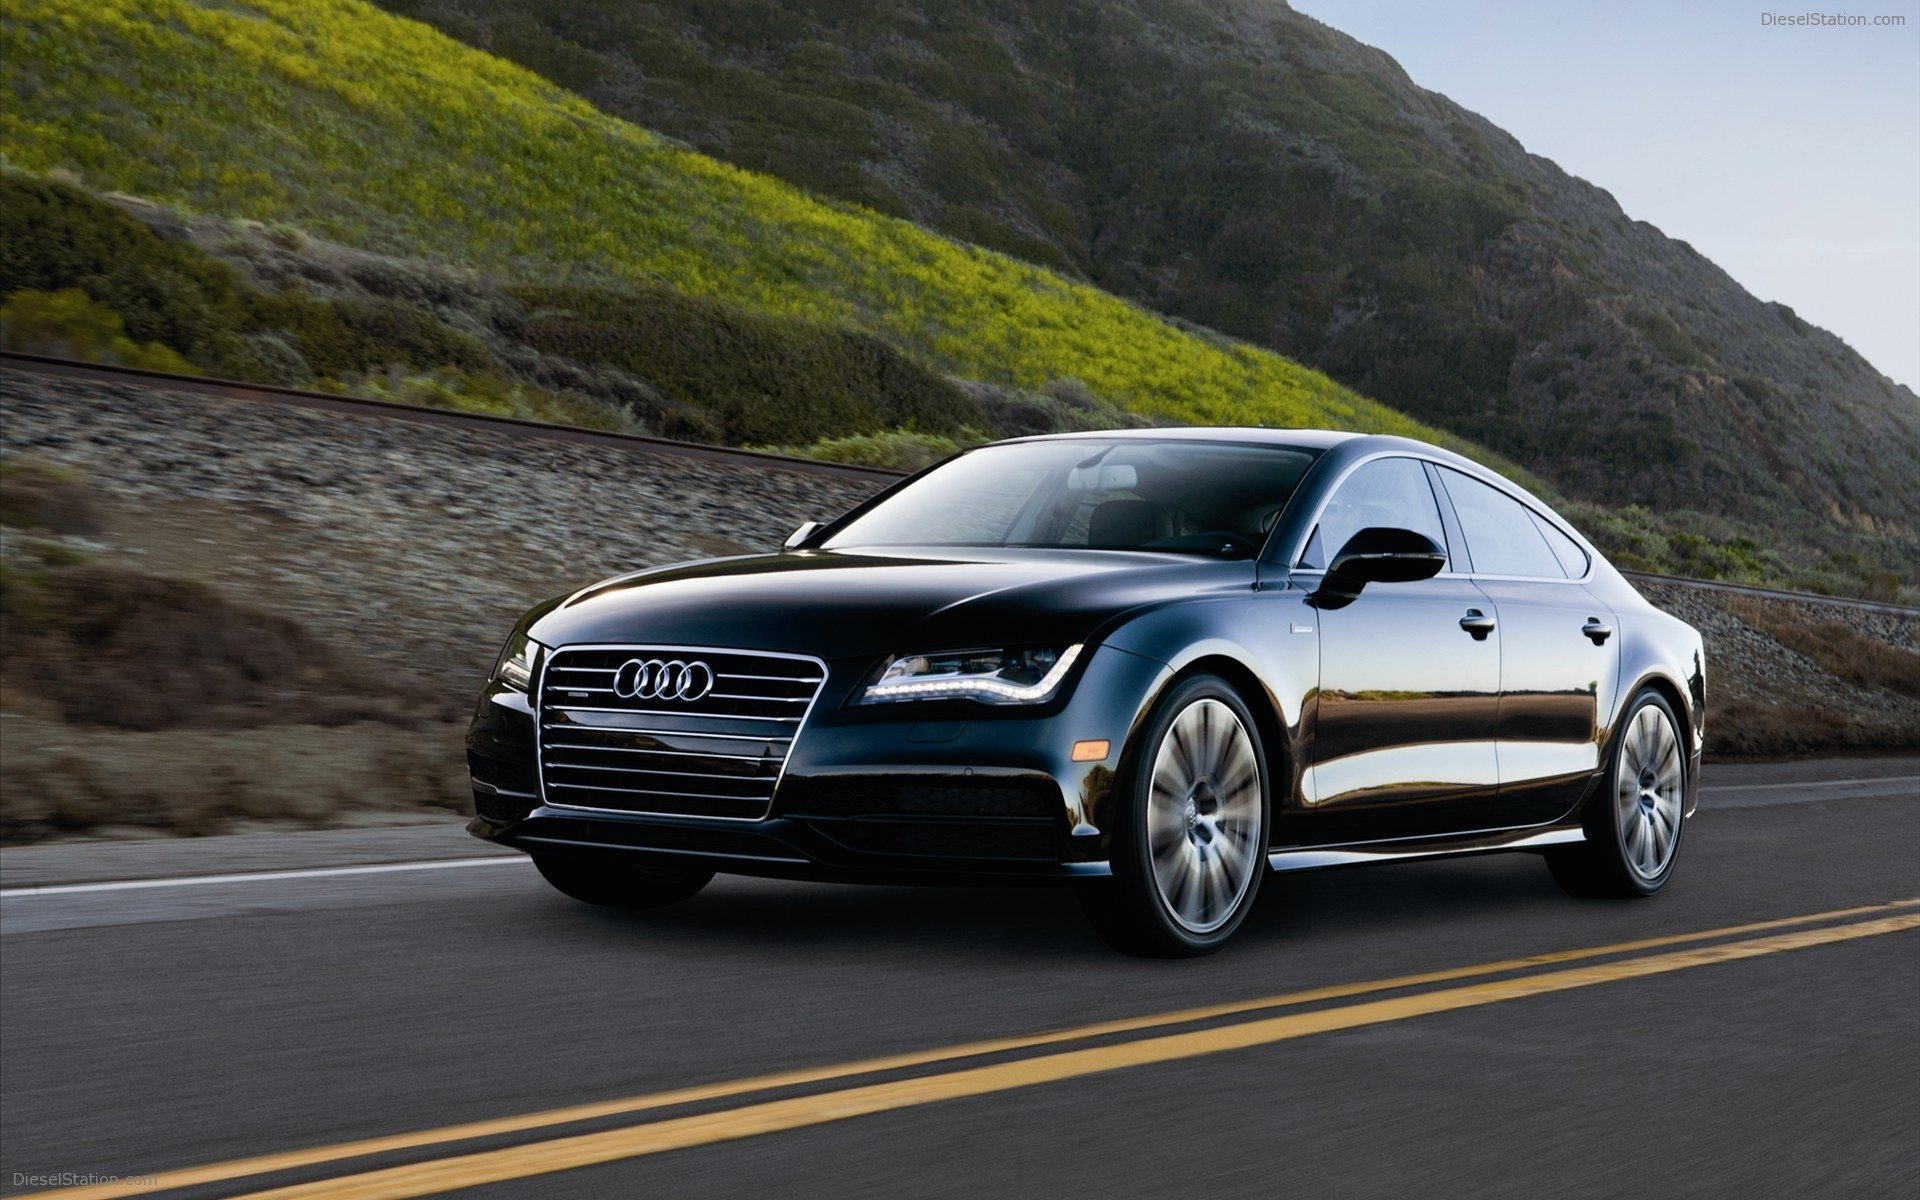 Audi A7 Wallpapers Wide Screen Wallpaper 1080p2K4K 1920x1200